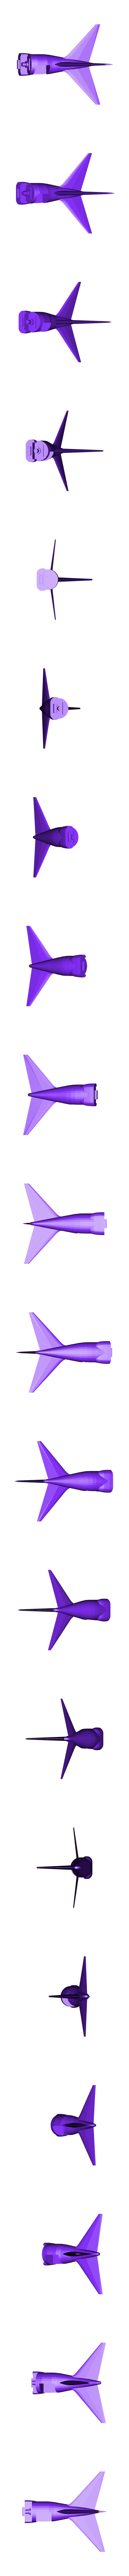 Tail_section.stl Download free STL file SOFIA, the Stratospheric Observatory for Infrared Astronomy • 3D printable design, spac3D